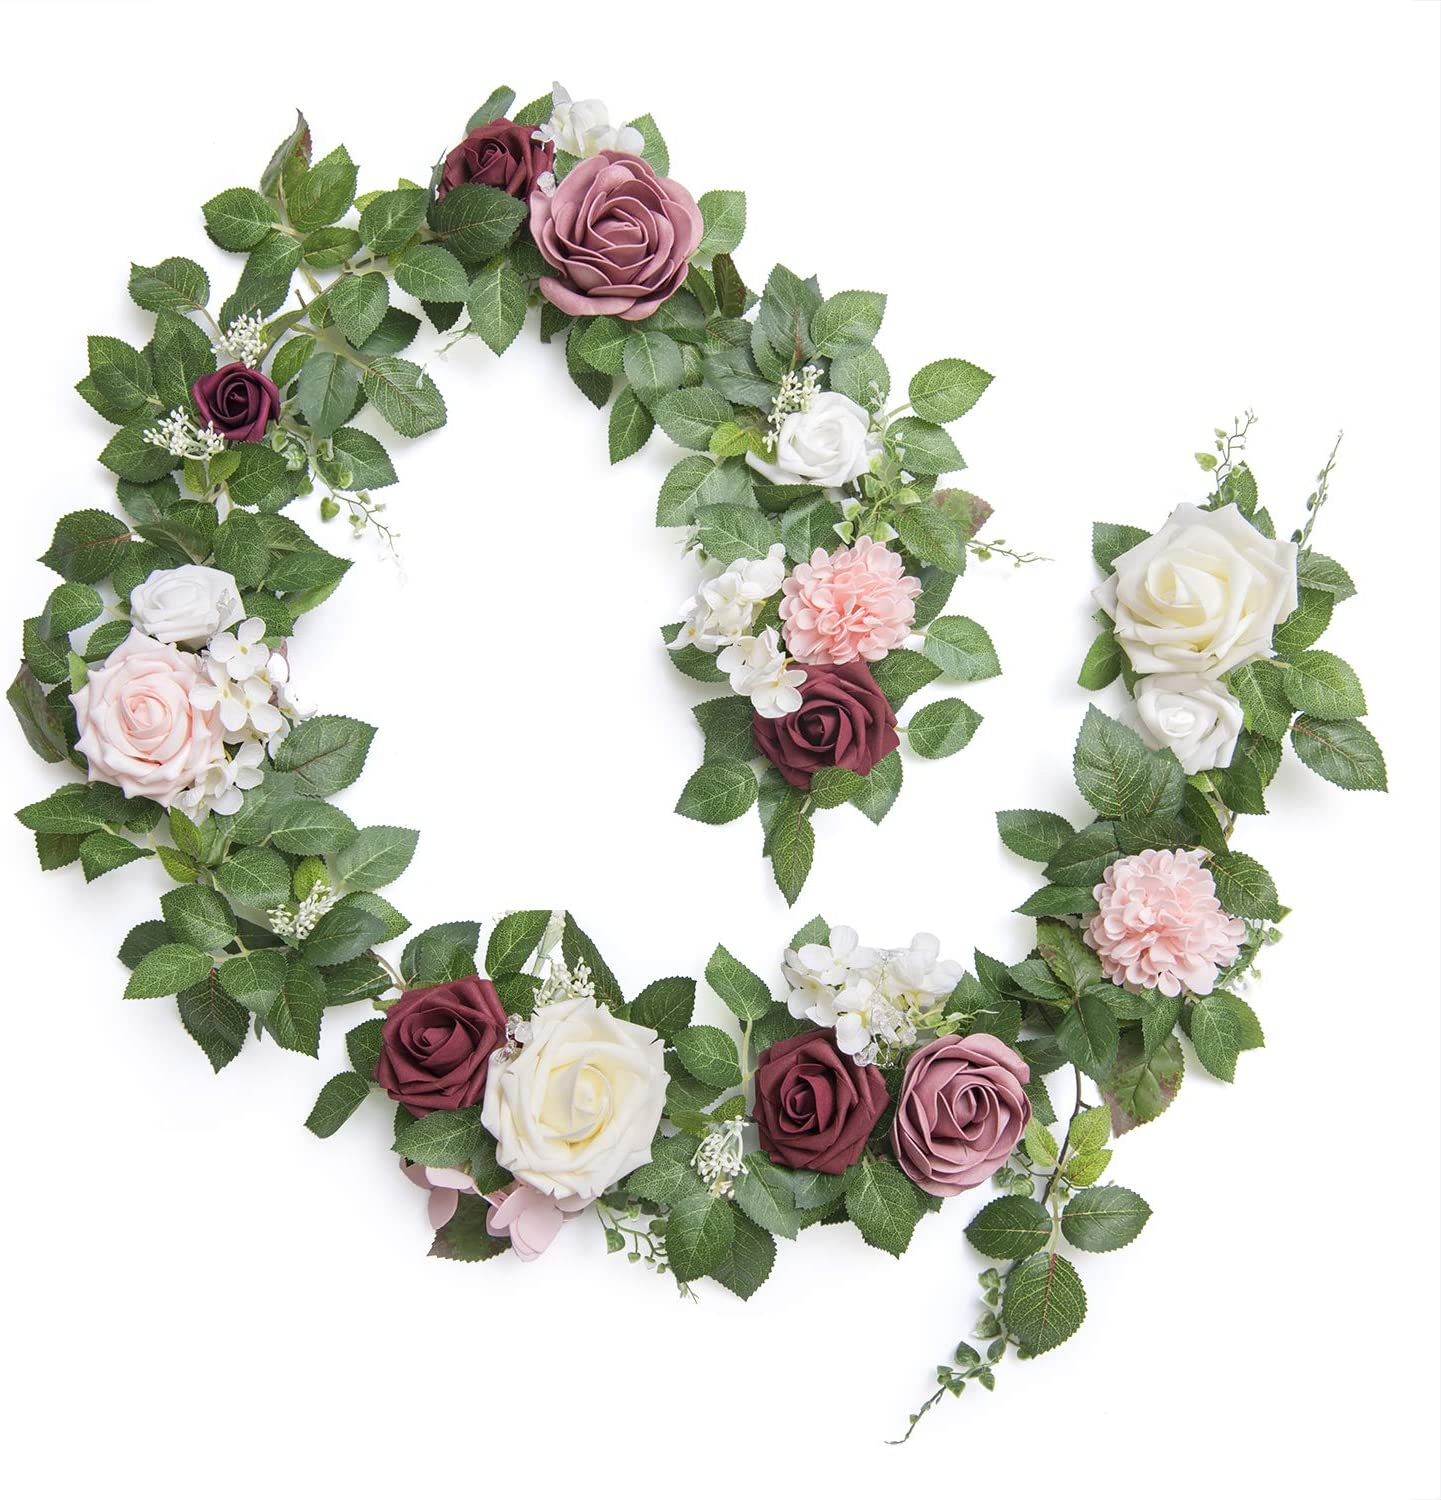 Ling's moment Handcrafted Real Touch Flower Rose Garland 5FT, Artificial Foliage Greenery Vine with Mixed Flowers, for Table Runner, Wedding Arch Backdrop, Sweetheart Table, Centerpieces, Photo Booth